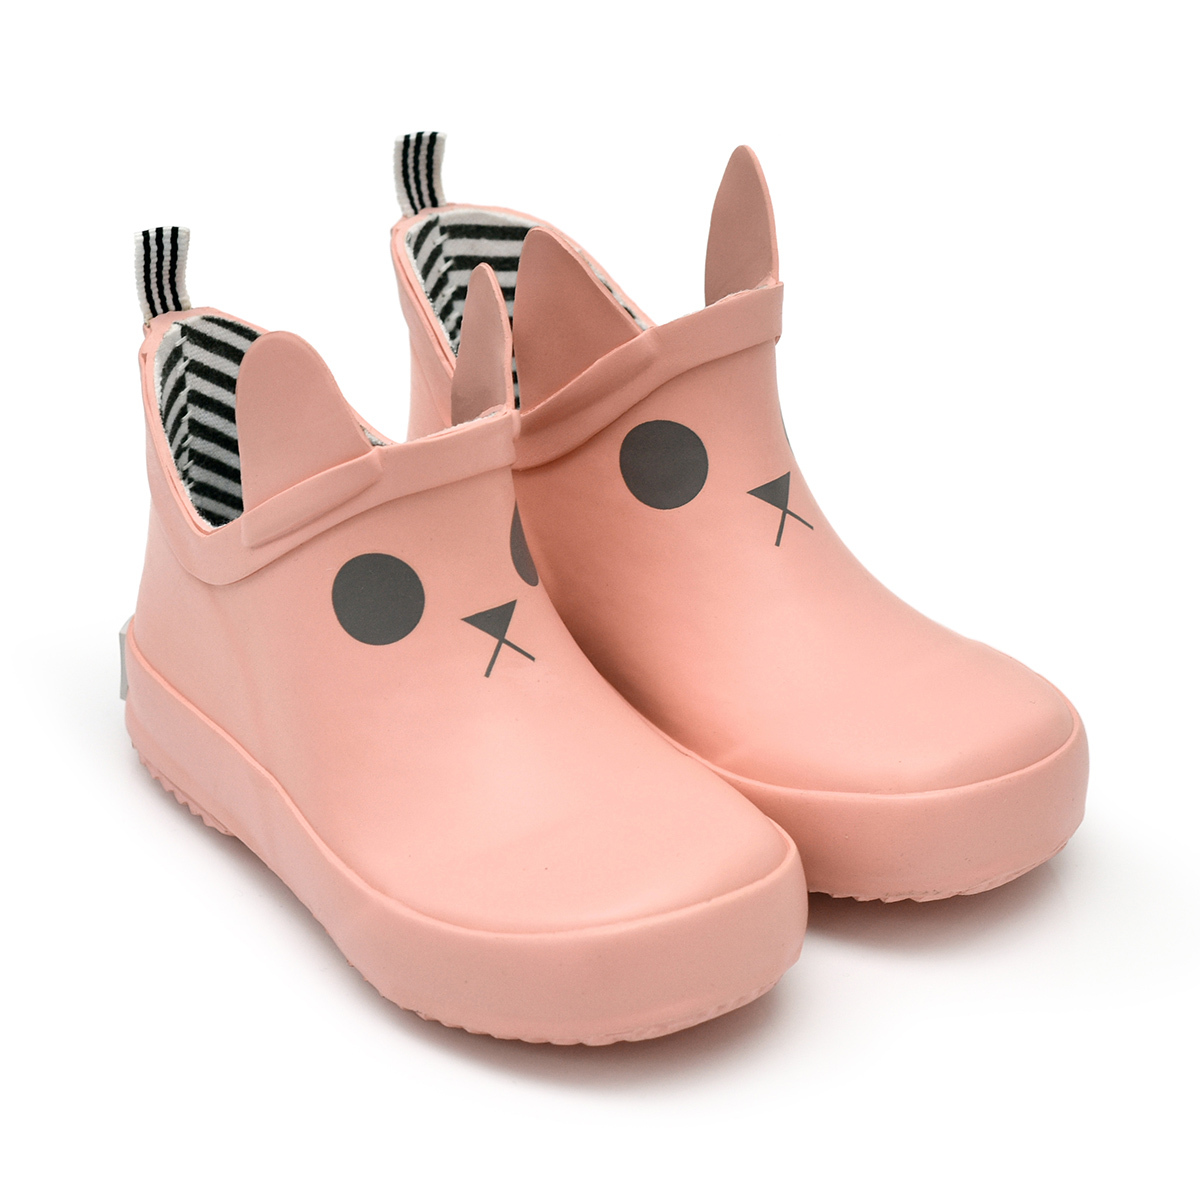 Chaussons & Chaussures Bottines Kerran Salmon Pink - 20 Bottines Kerran Salmon Pink - 20